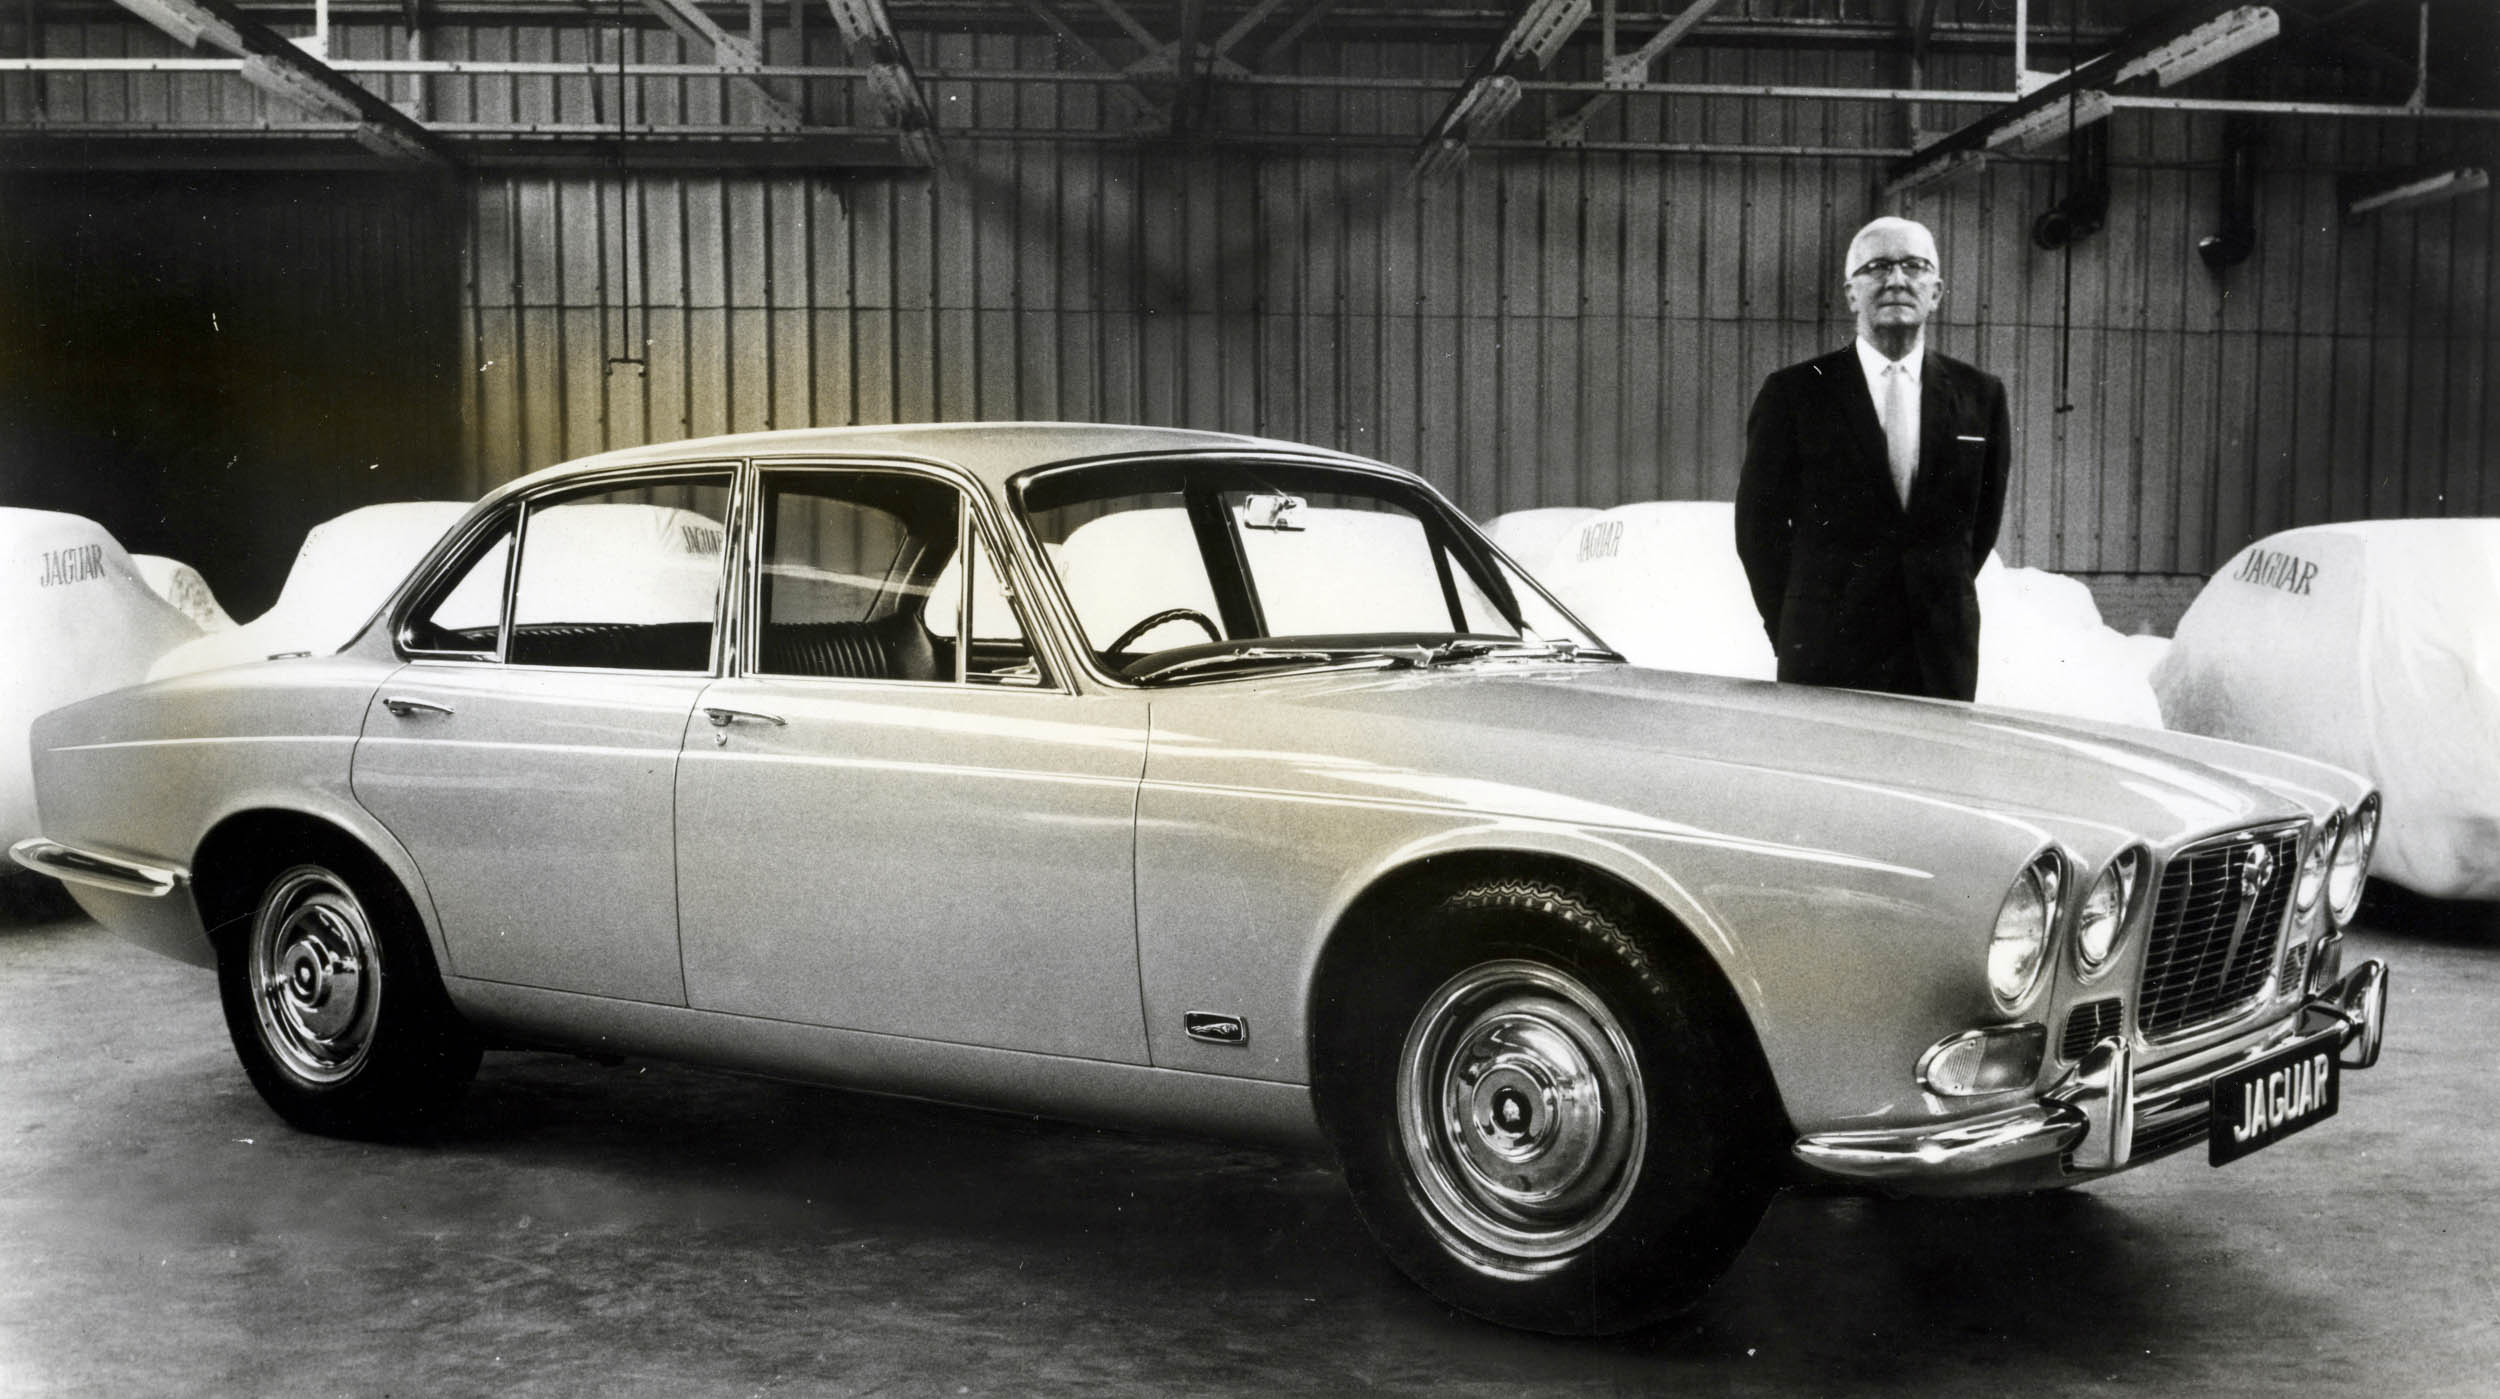 Sir William Lyons with XJ6 Series I